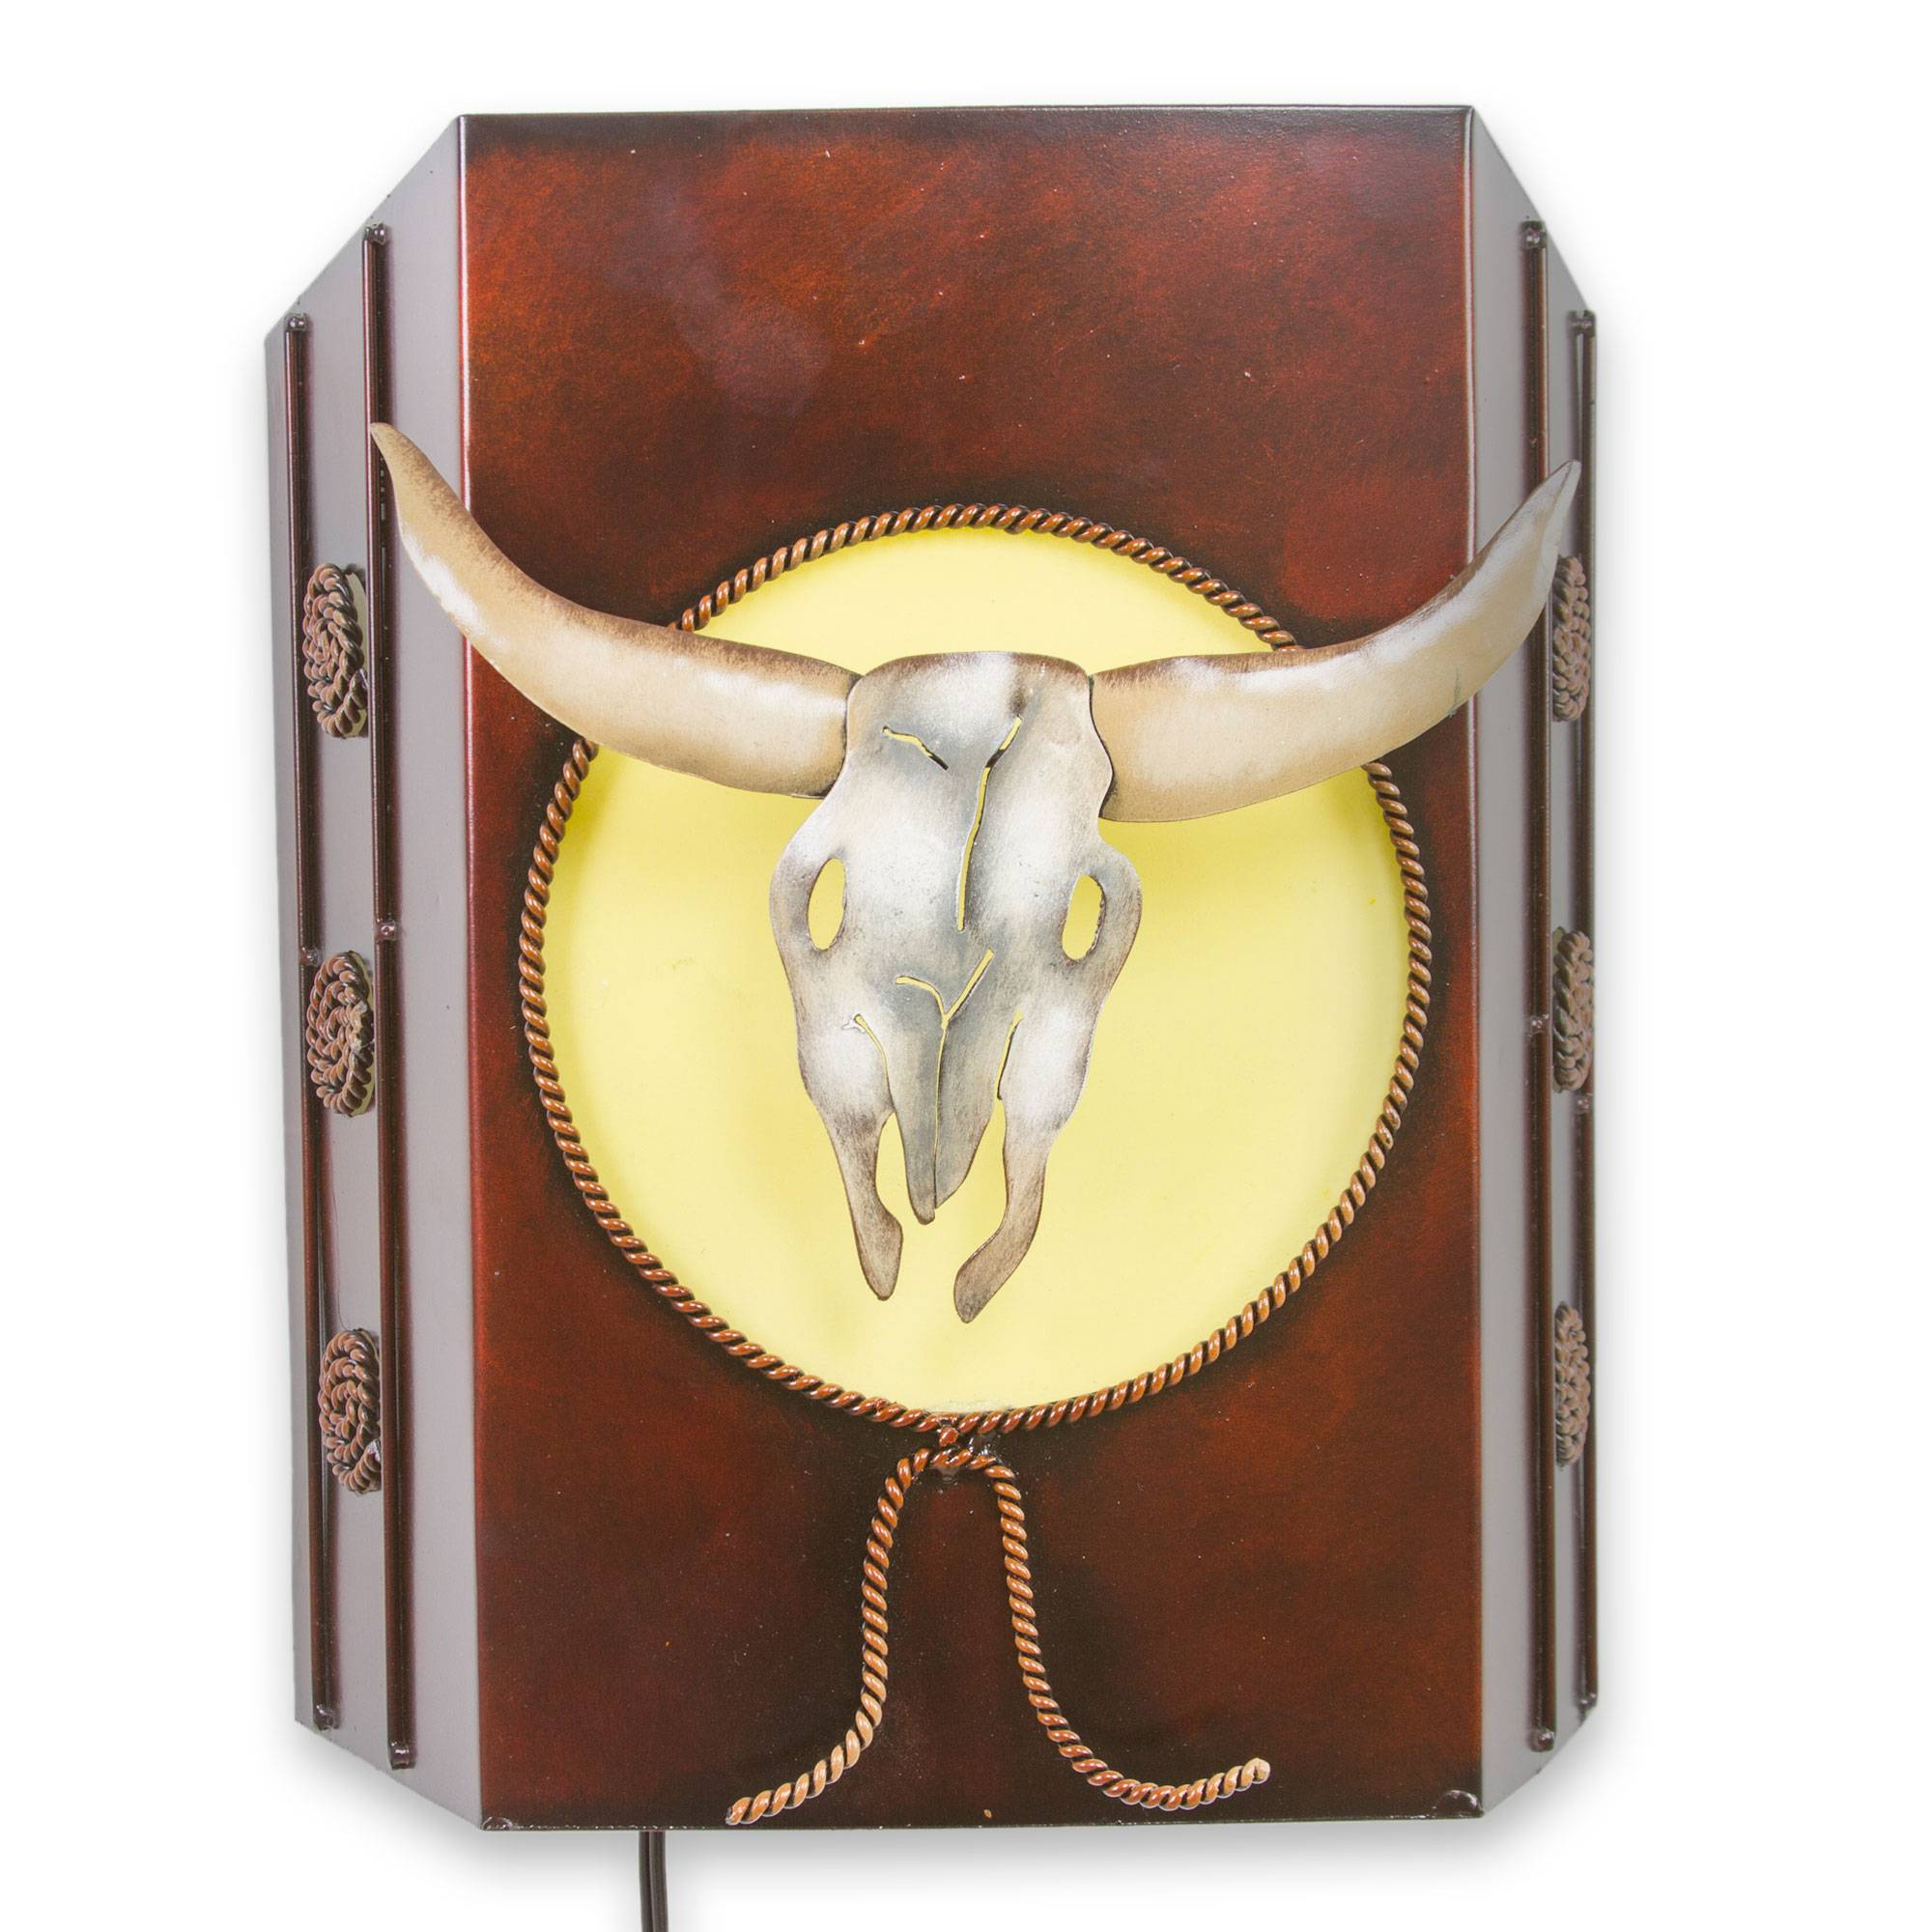 UNICEF Market   Old West Rustic Cattle Theme Wall Lamp from Mexico ...